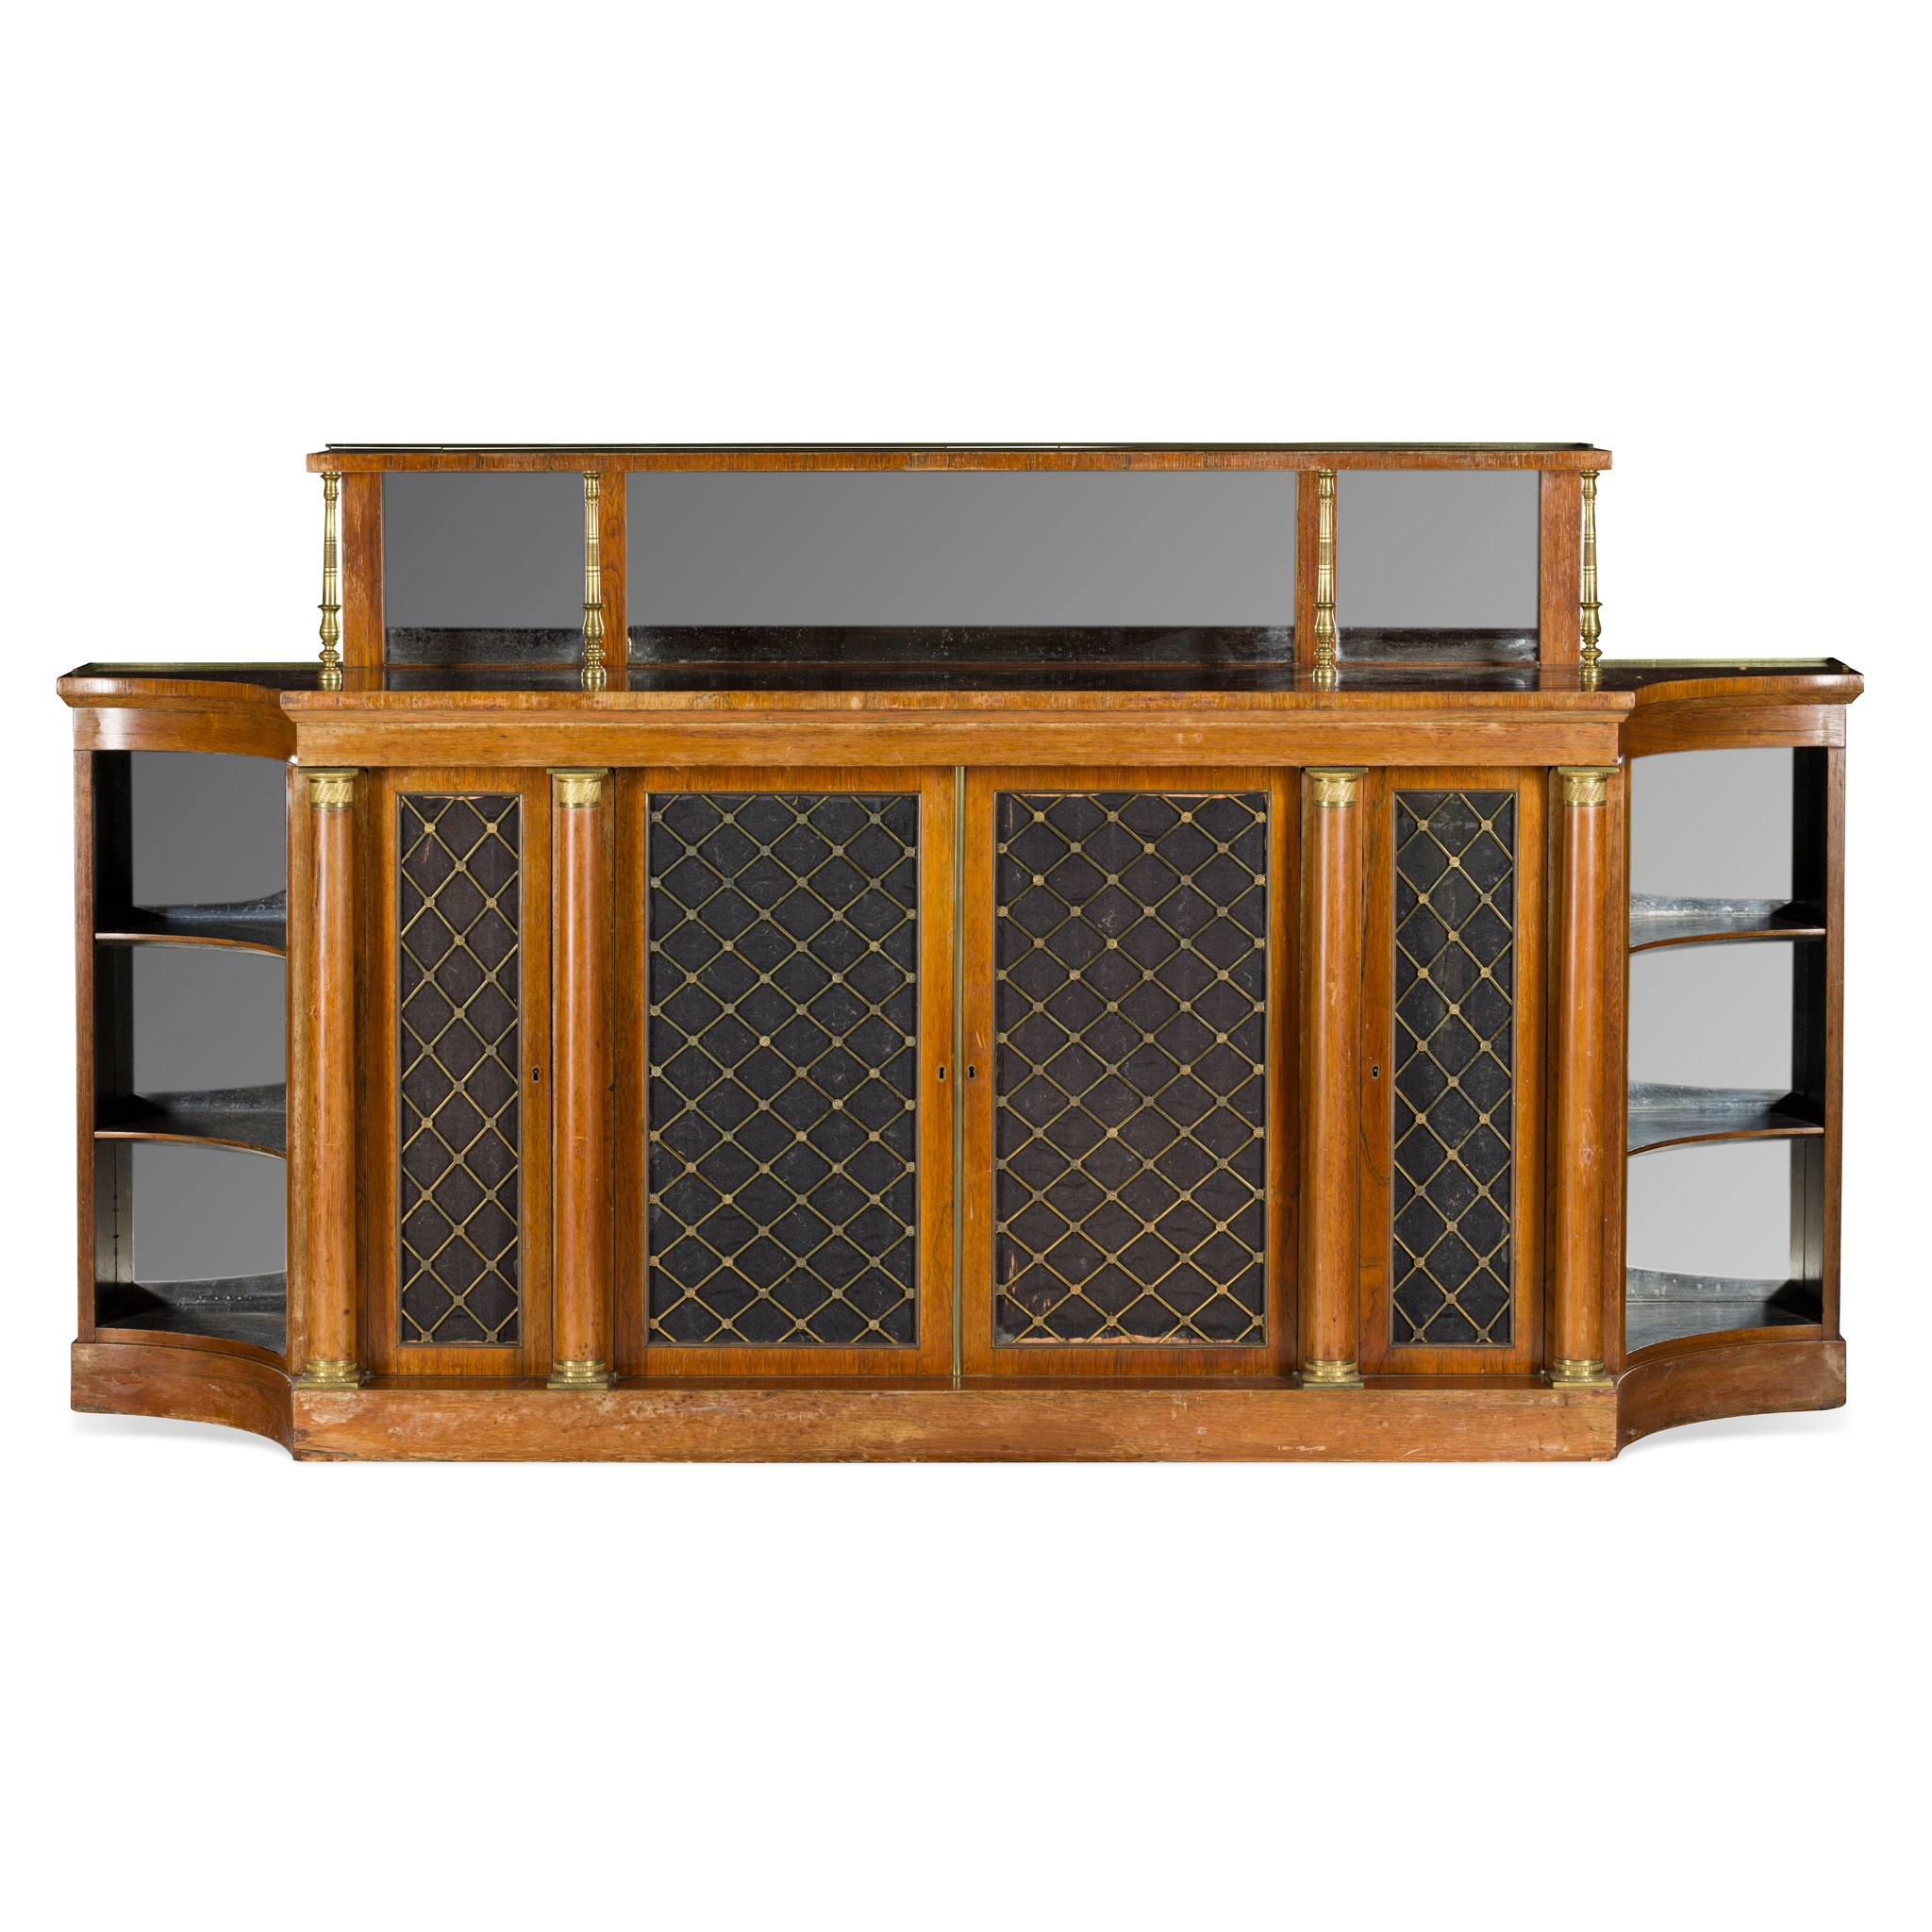 Y REGENCY ROSEWOOD BRASS AND MIRROR MOUNTED CREDENZA EARLY 19TH CENTURY